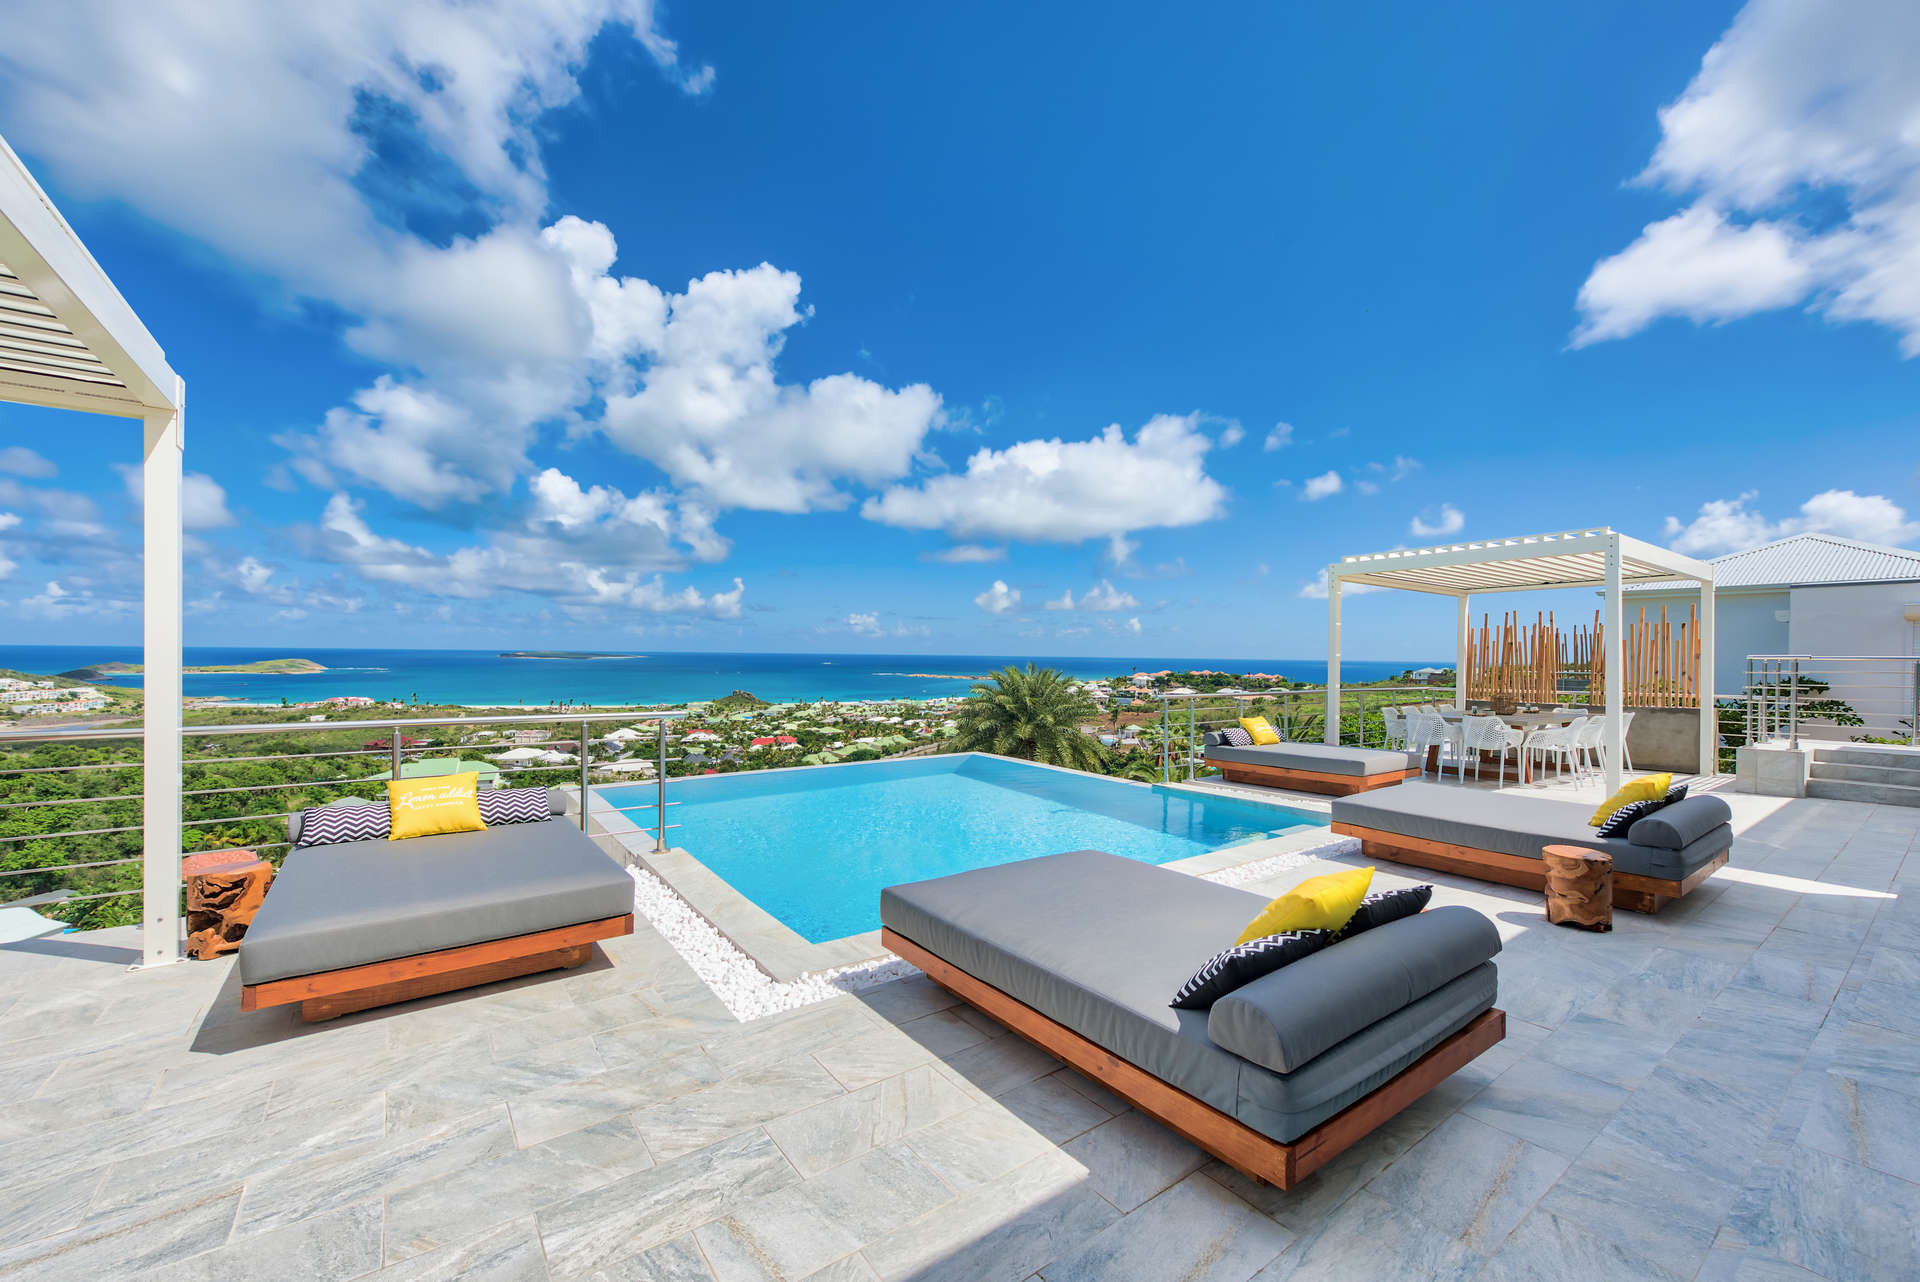 Luxury villa rentals caribbean - St martin - Saint martin french - Orient bay - Turquoze - Image 1/21